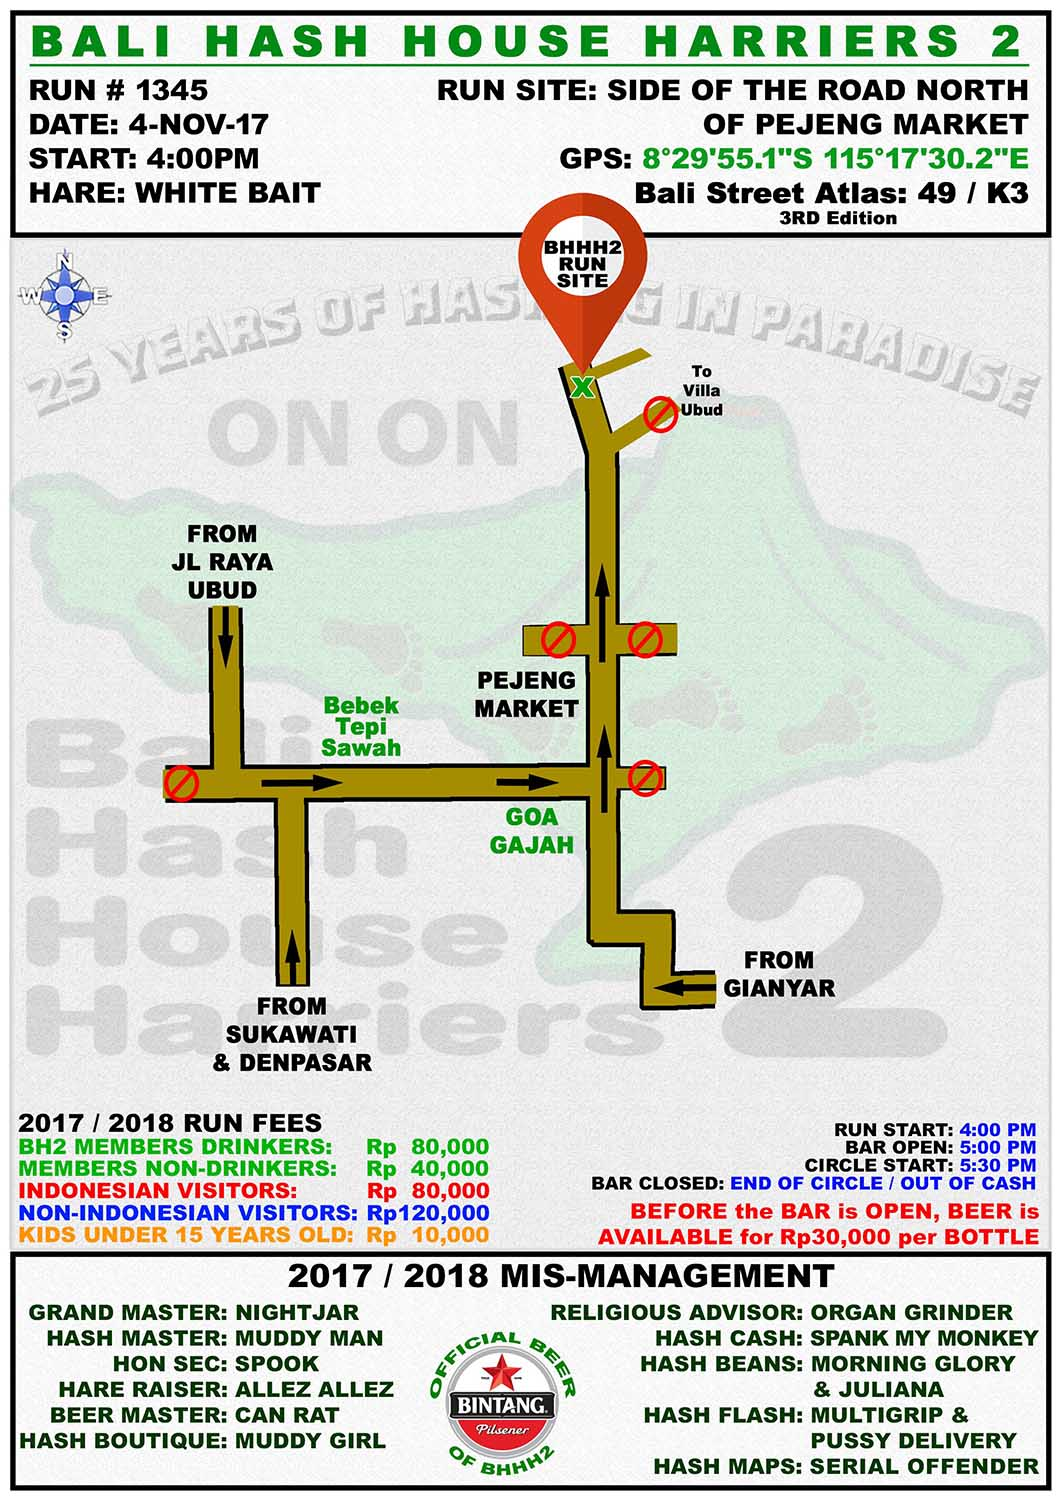 BHHH2 Run 1345 Pejeng Gianyar 4-Nov-17 UPDATE